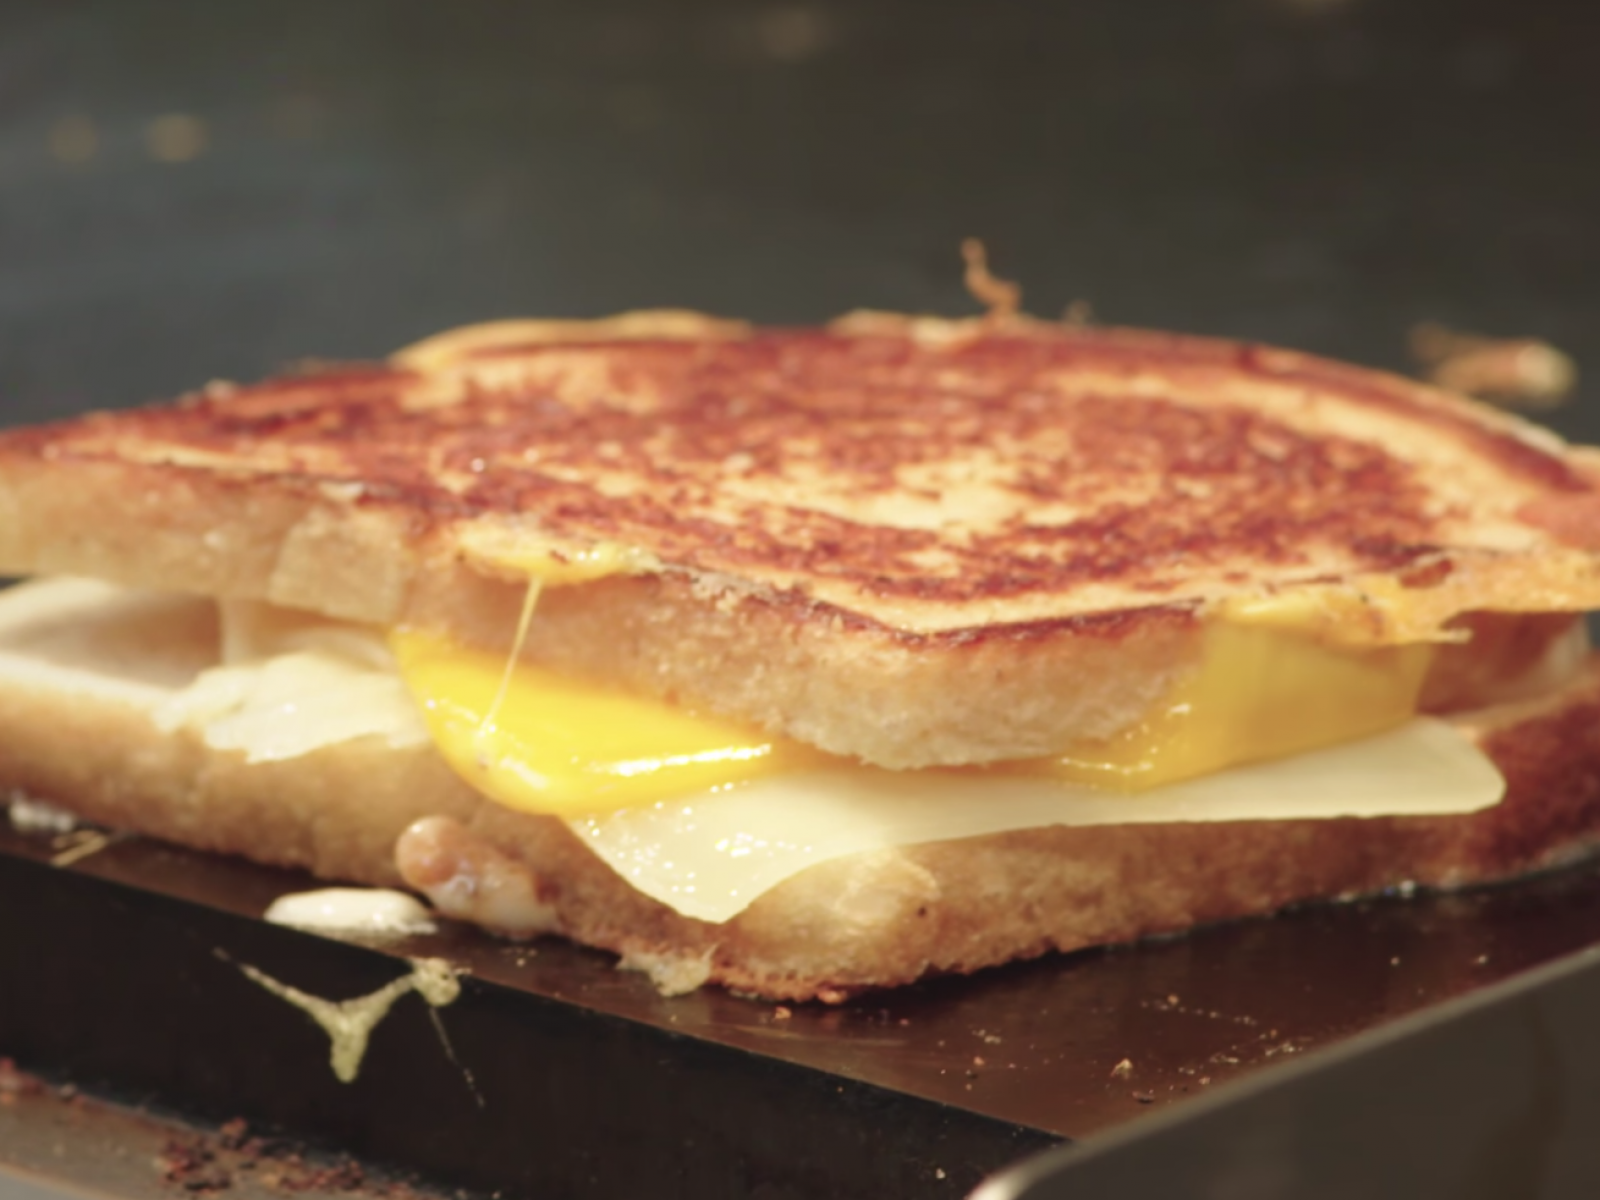 Best Grilled Cheese Chef Movie Recipe Revealed In New Jon